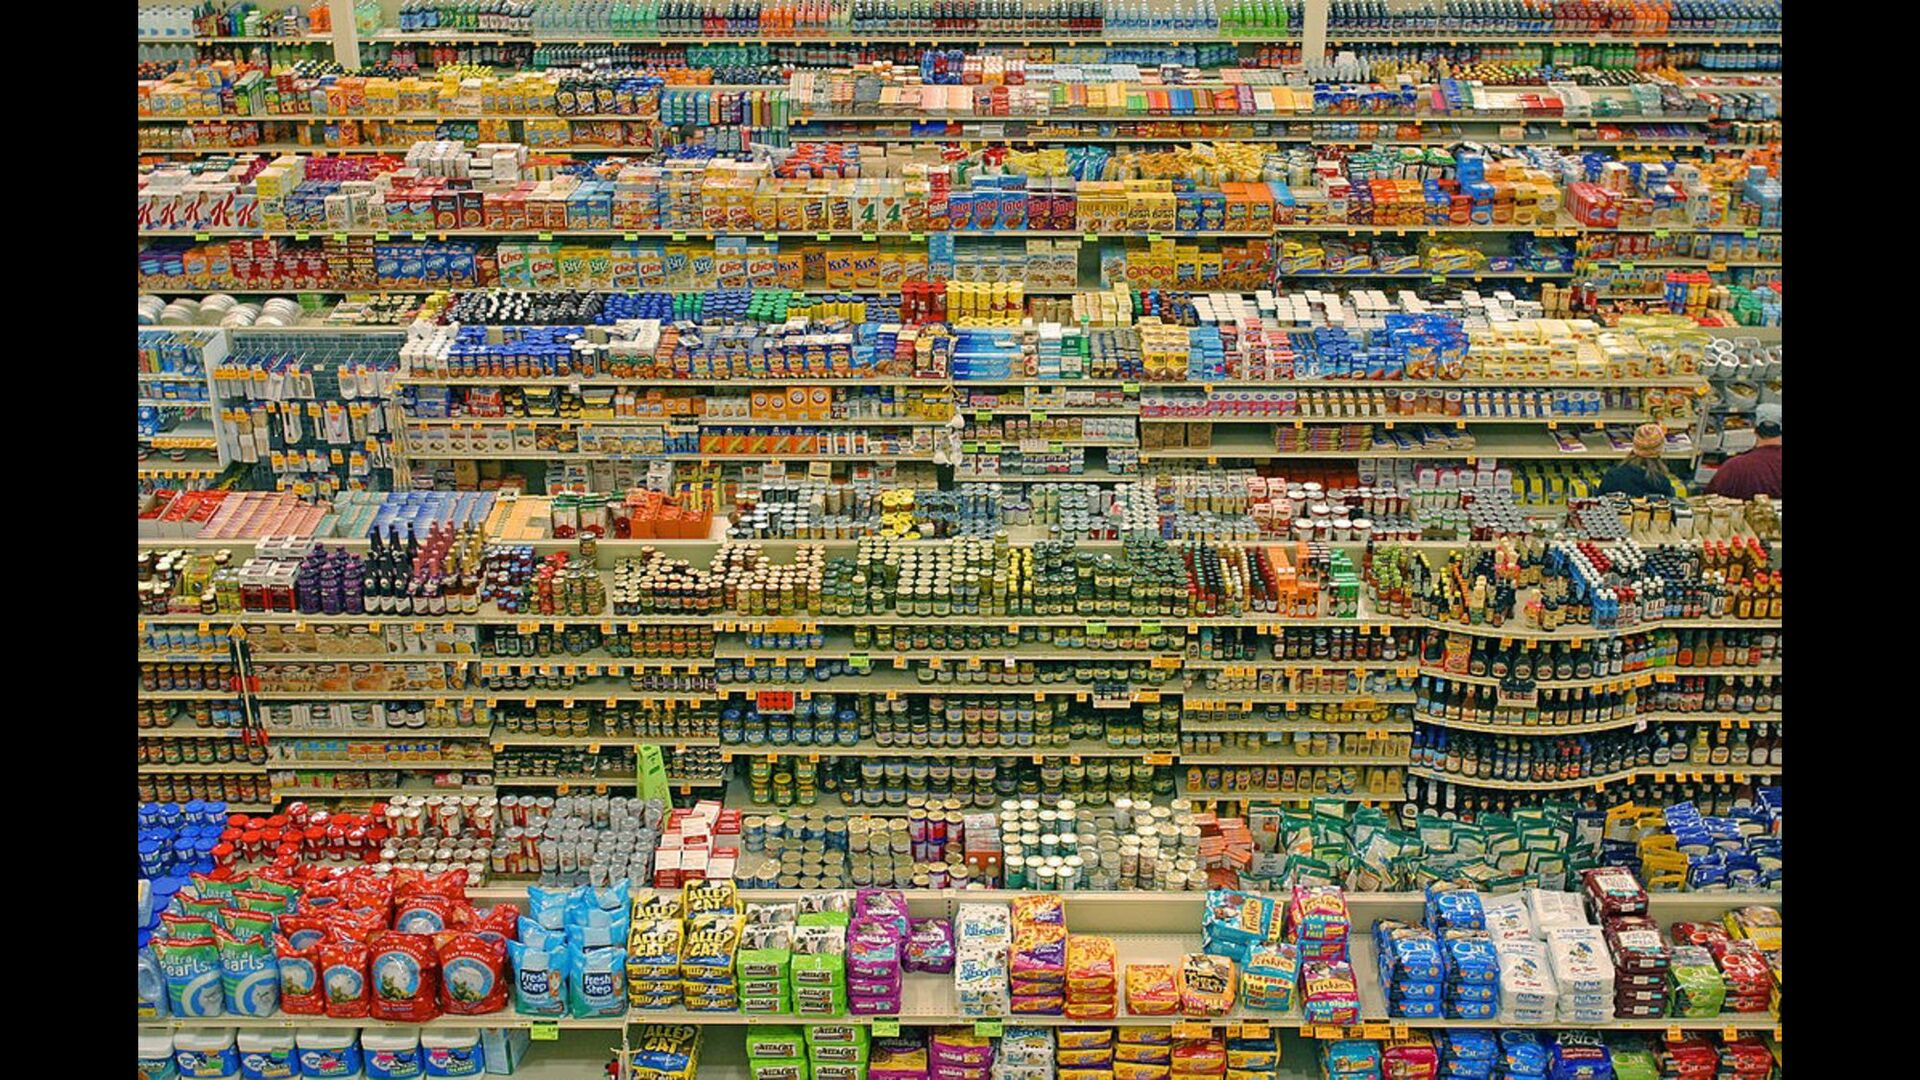 @hschwentner Other: Microservices Self-Containe...